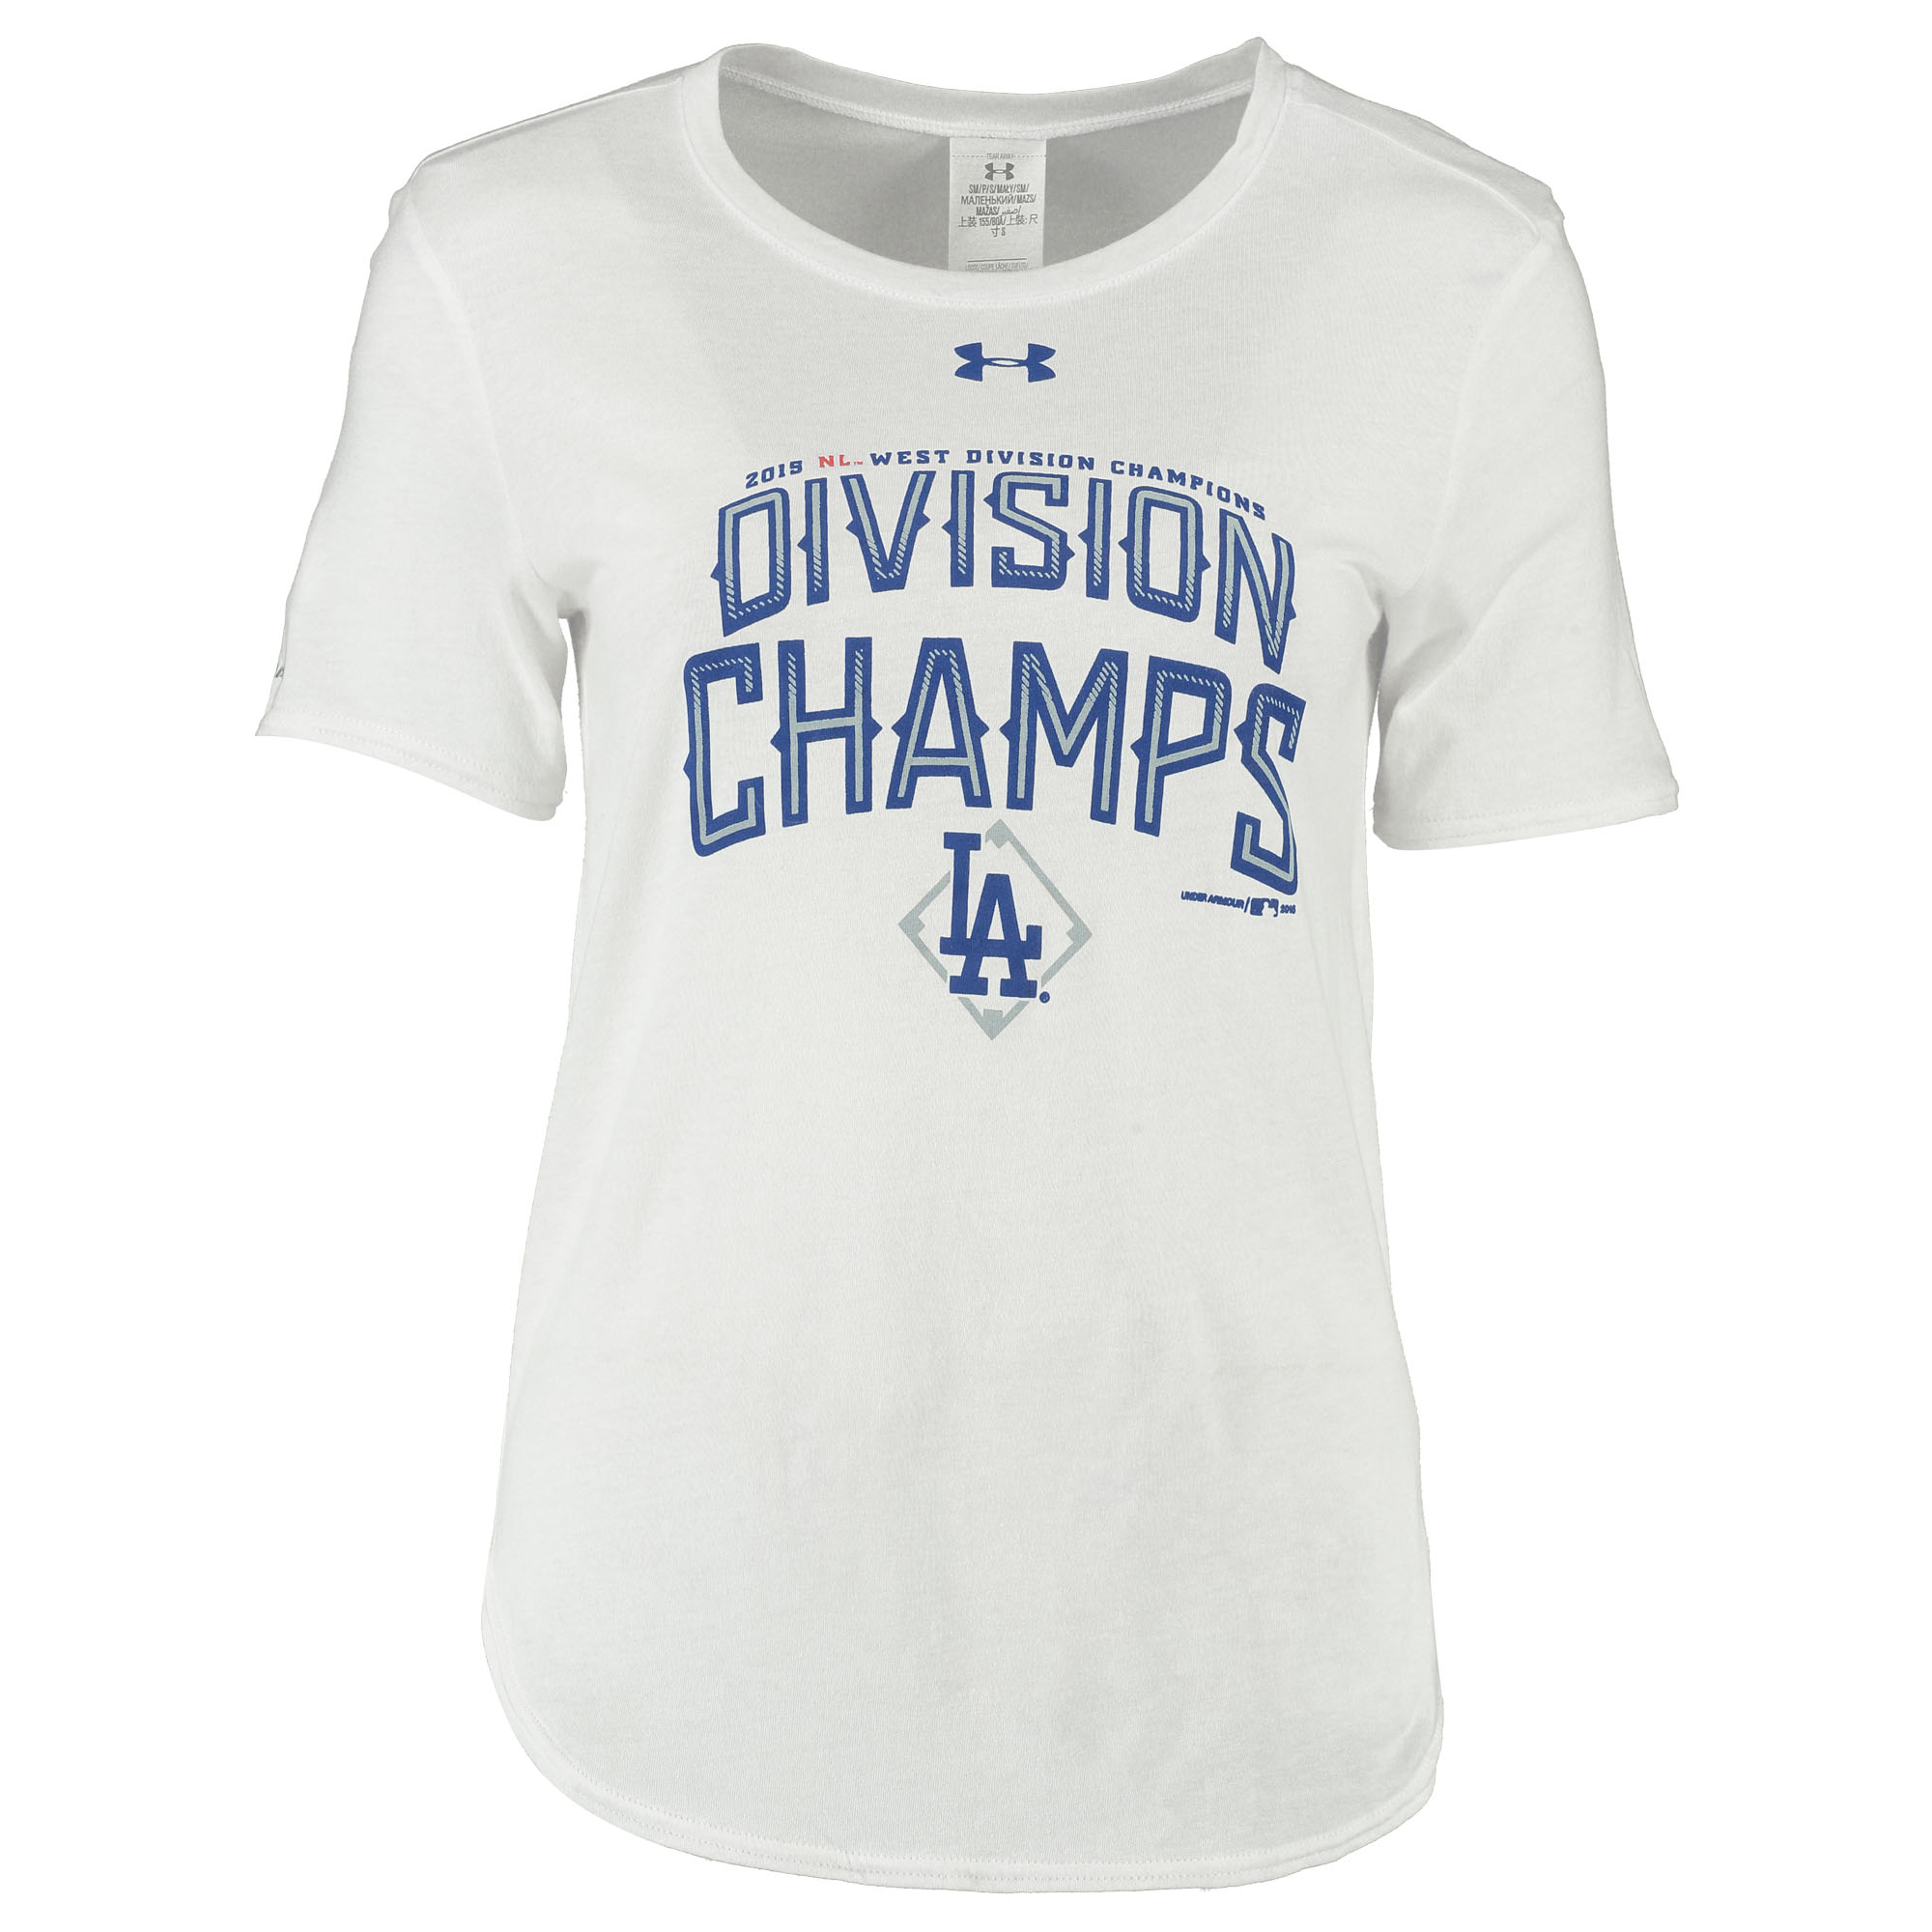 Los Angeles Dodgers Under Armour Women's 2015 Division Champions T-Shirt - White